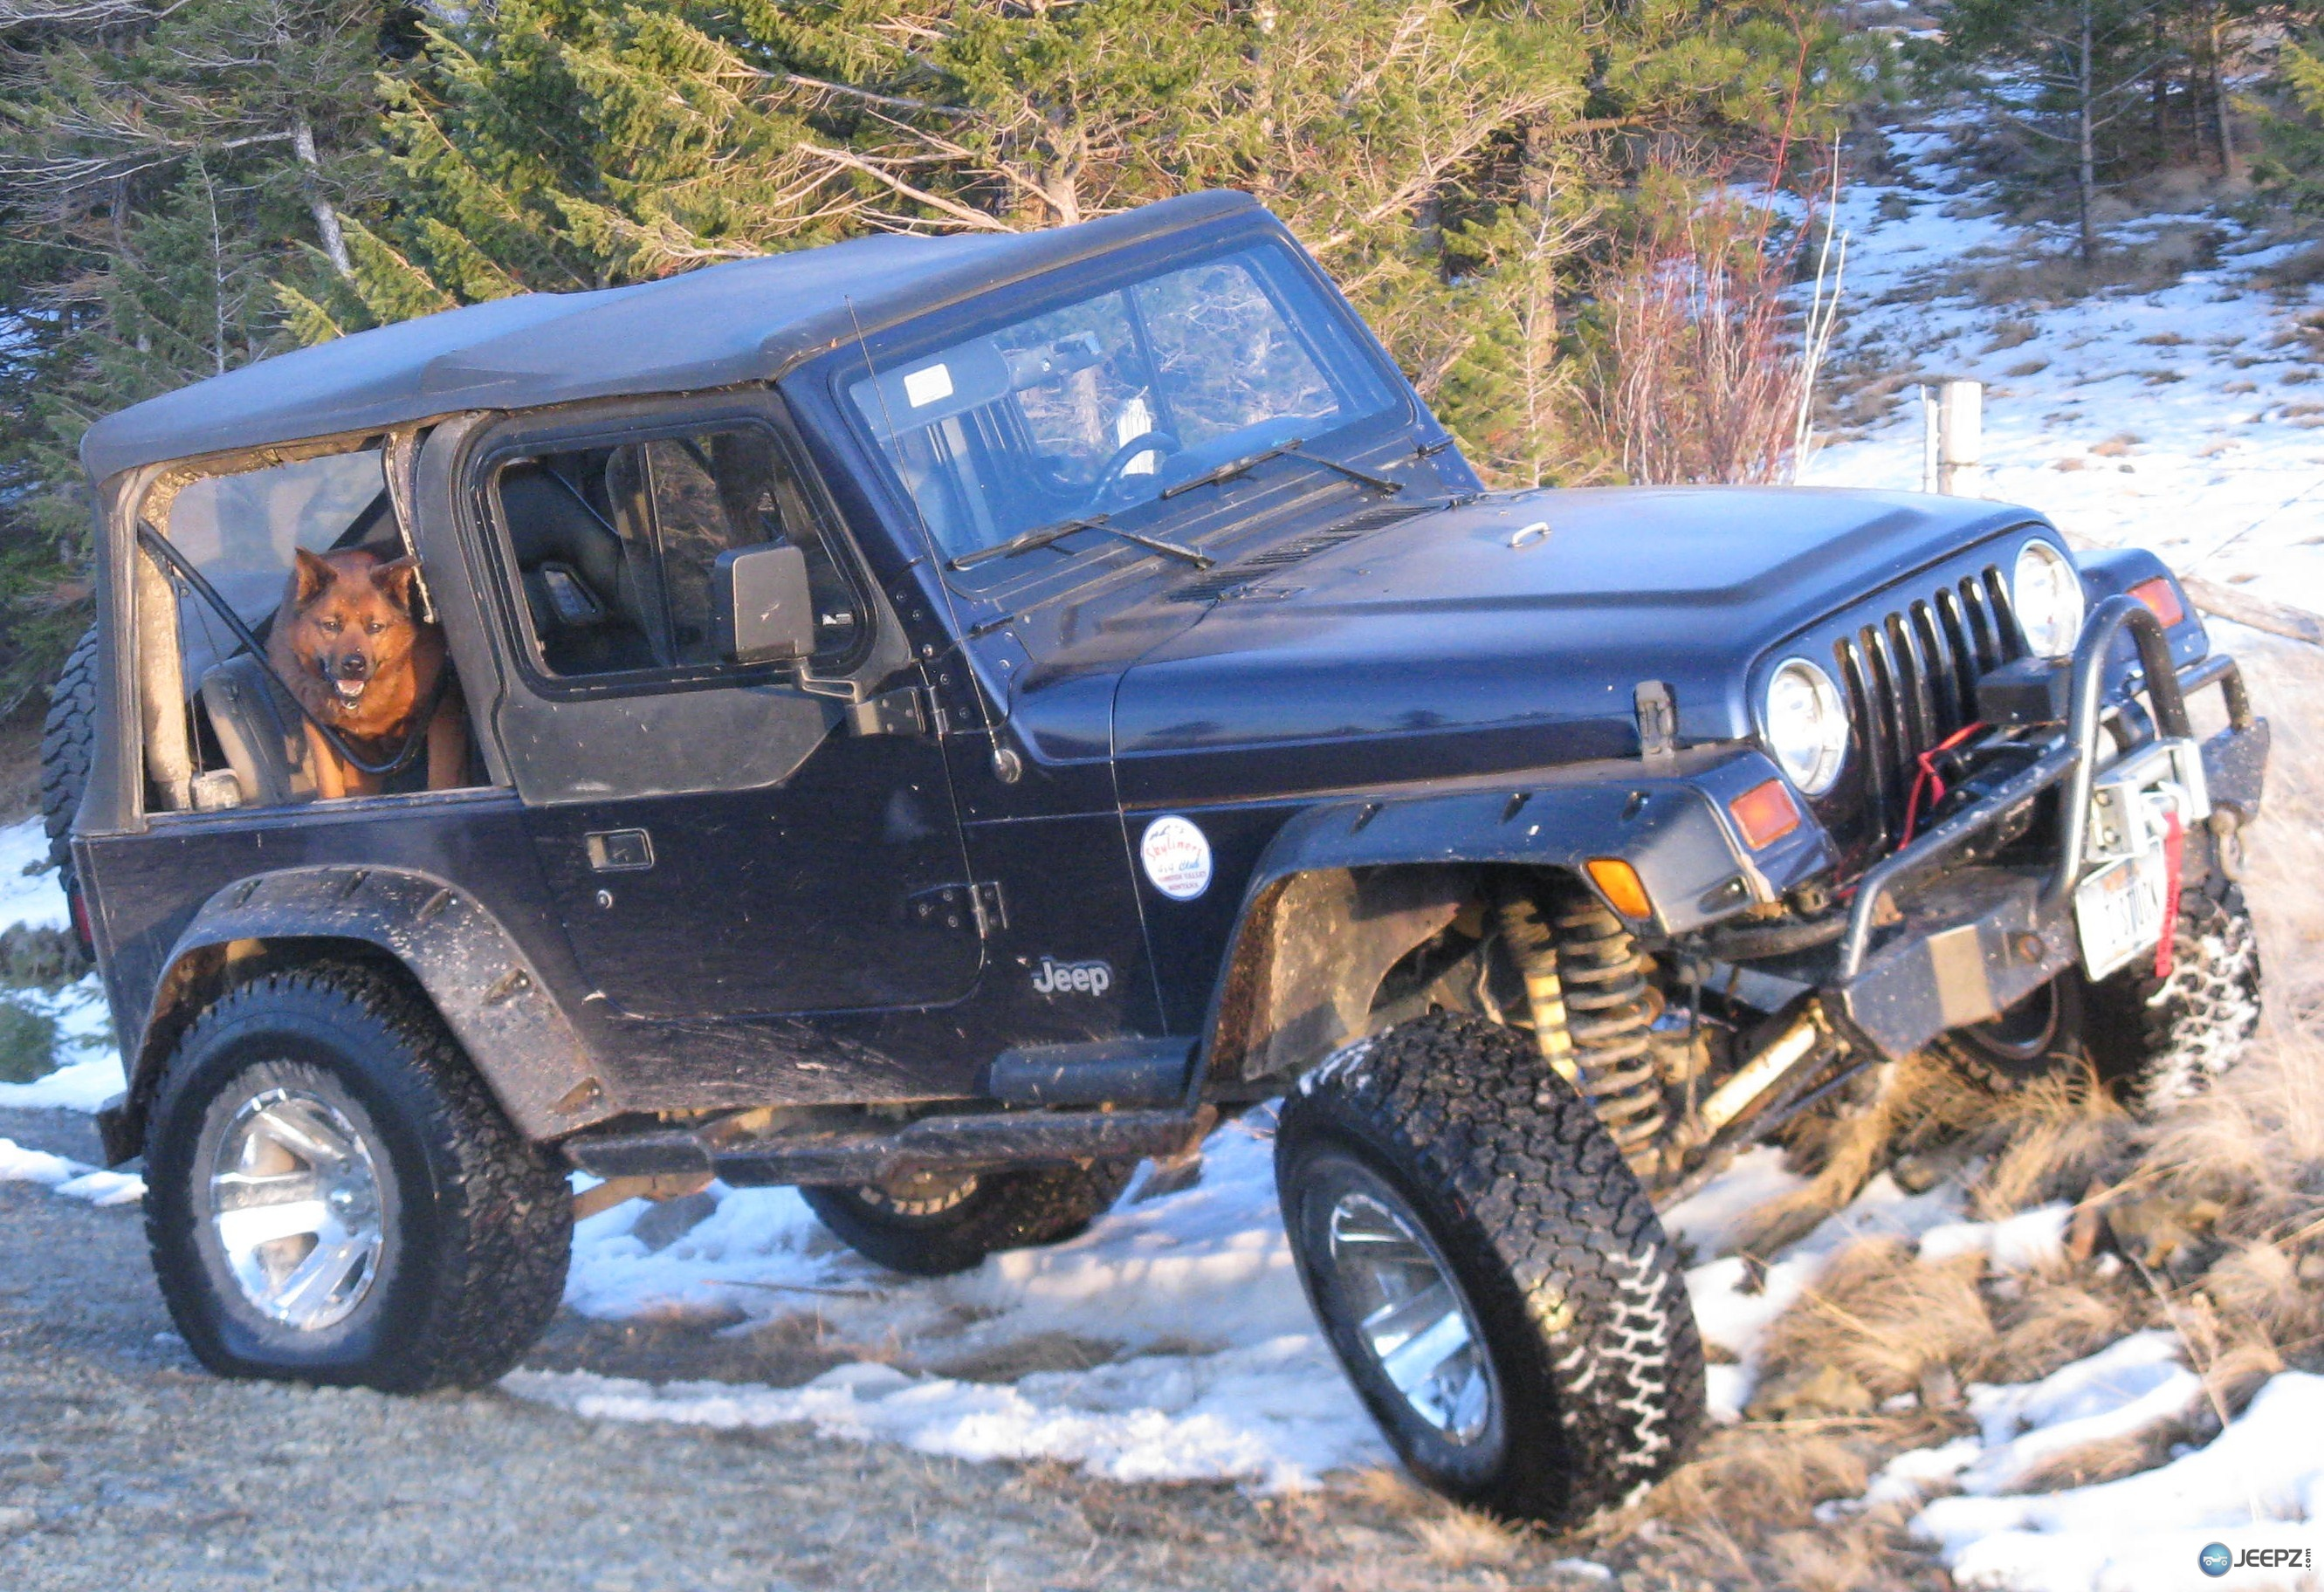 Jeep Wrangler For Sale In Sc >> Lifted 97 wrangler for sale